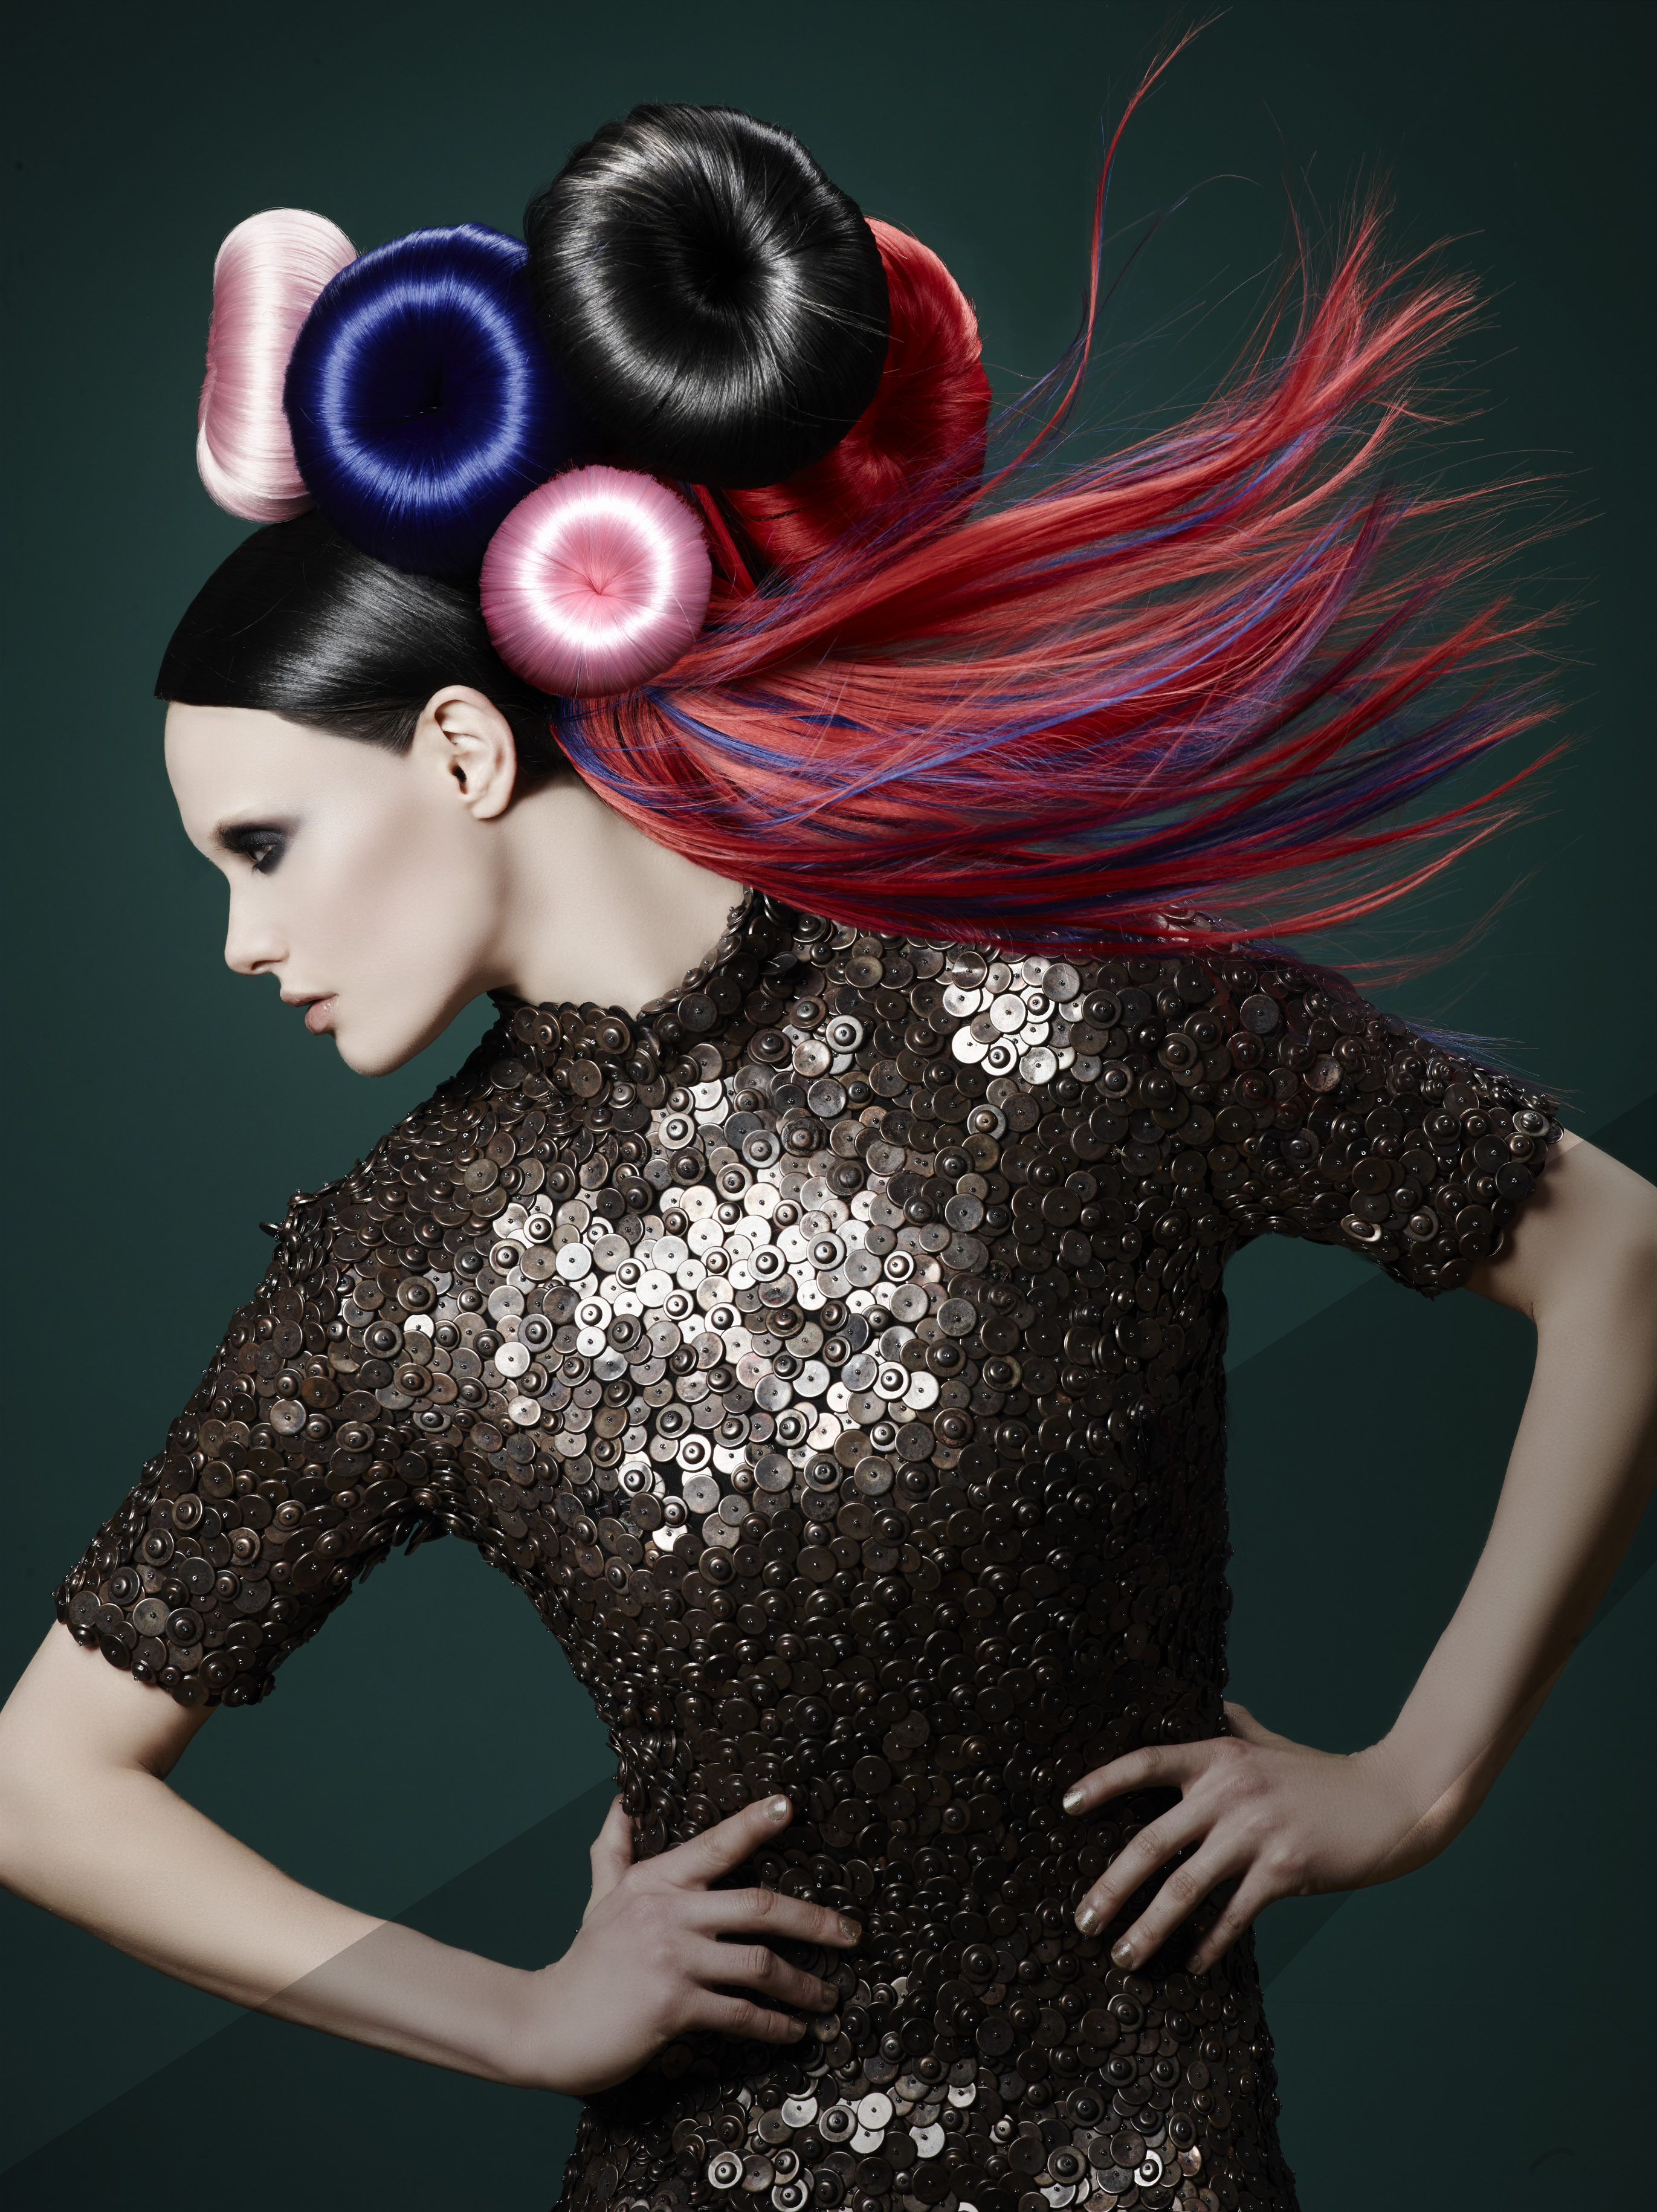 Opposites attract with pads wrapped in slightly metallic-looking shades of pink, blue, black and red hair set in relief against almost stick-straight crimson extensions shot through with royal blue.